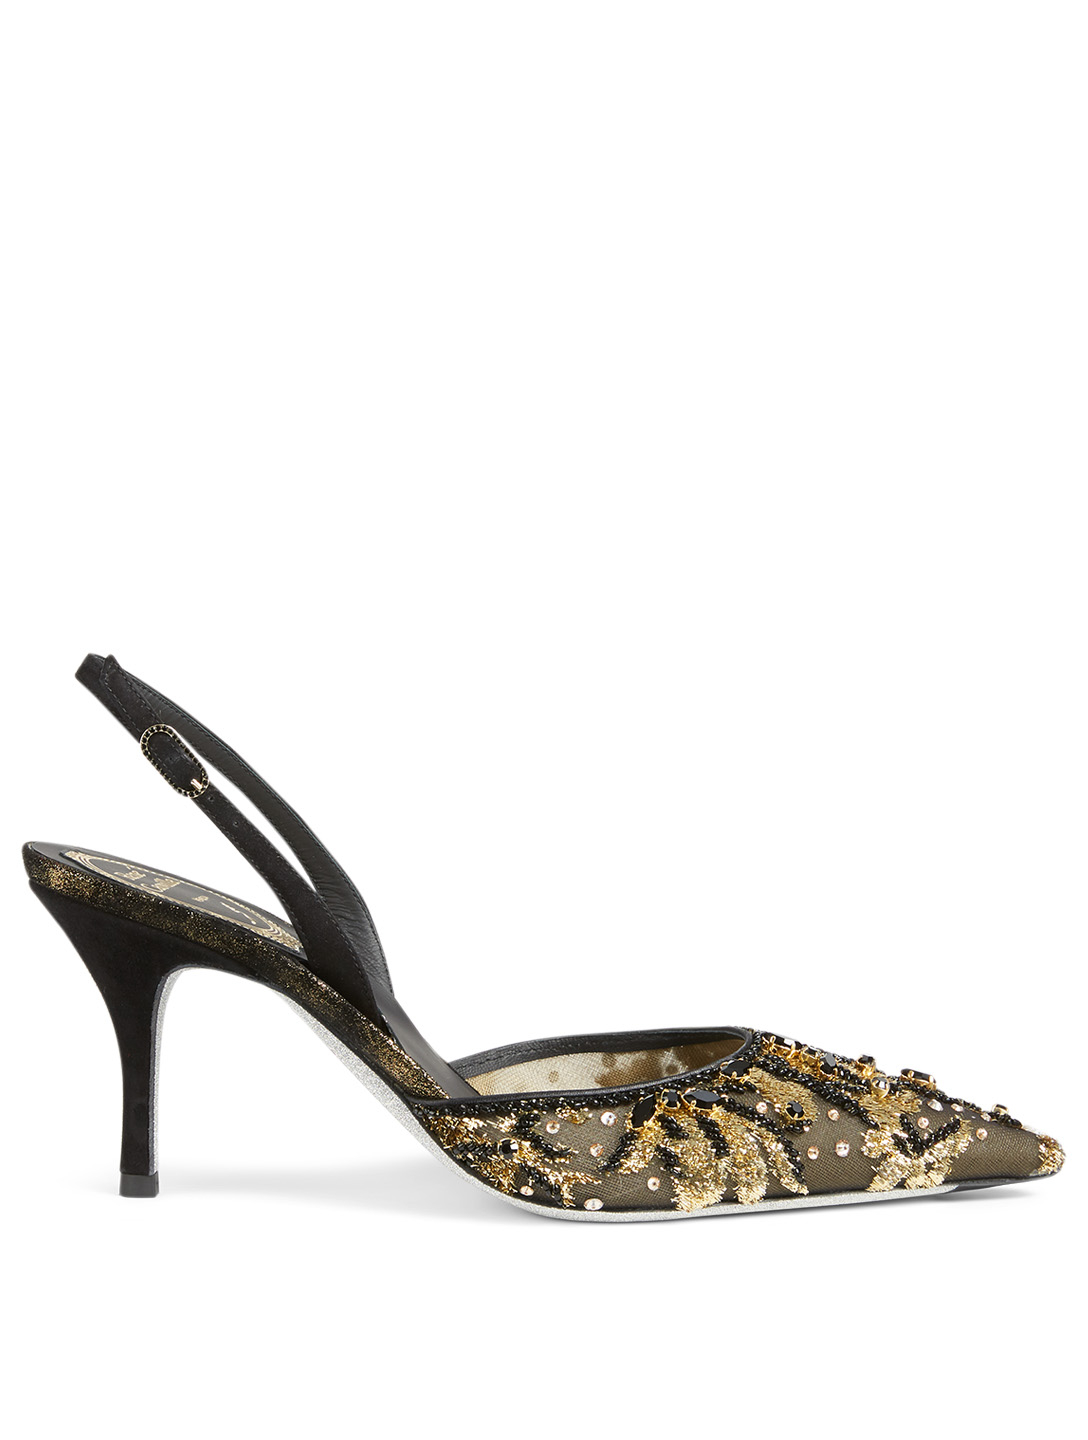 Lurexa 75 Tulle Slingback Pumps by Holt Renfrew